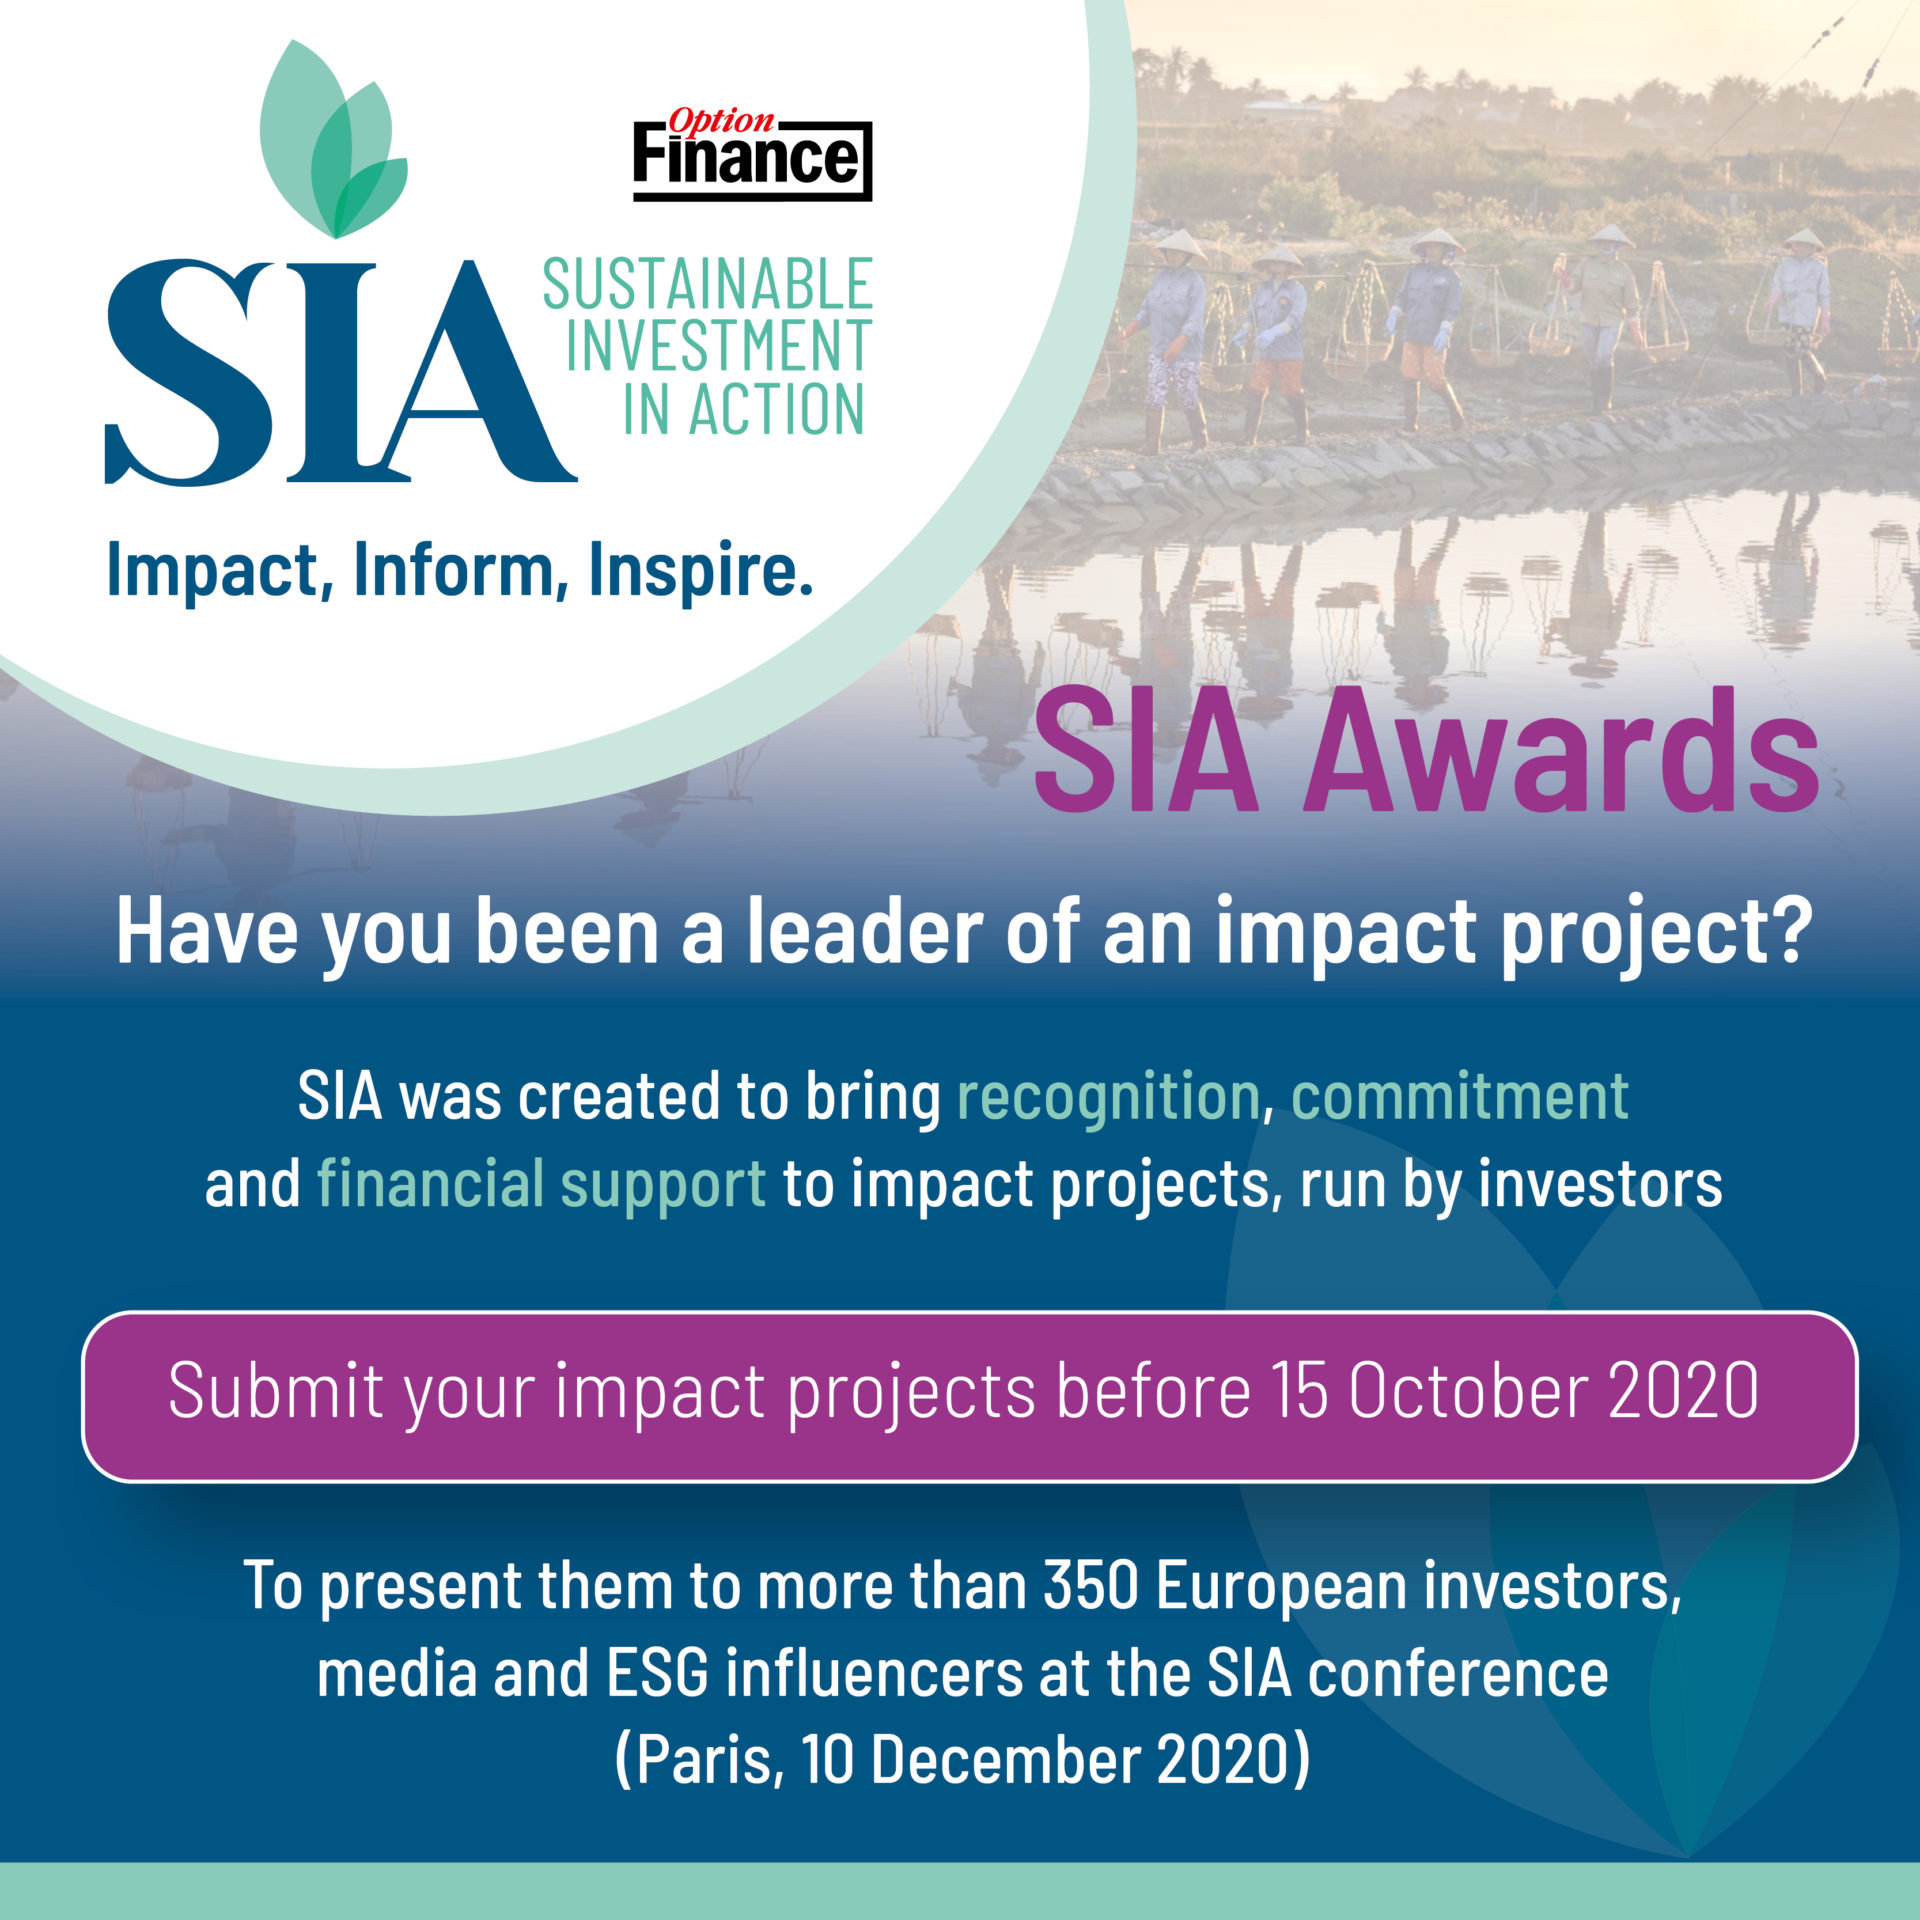 Sustainable Investment in Action Conference & Awards - Preview Image